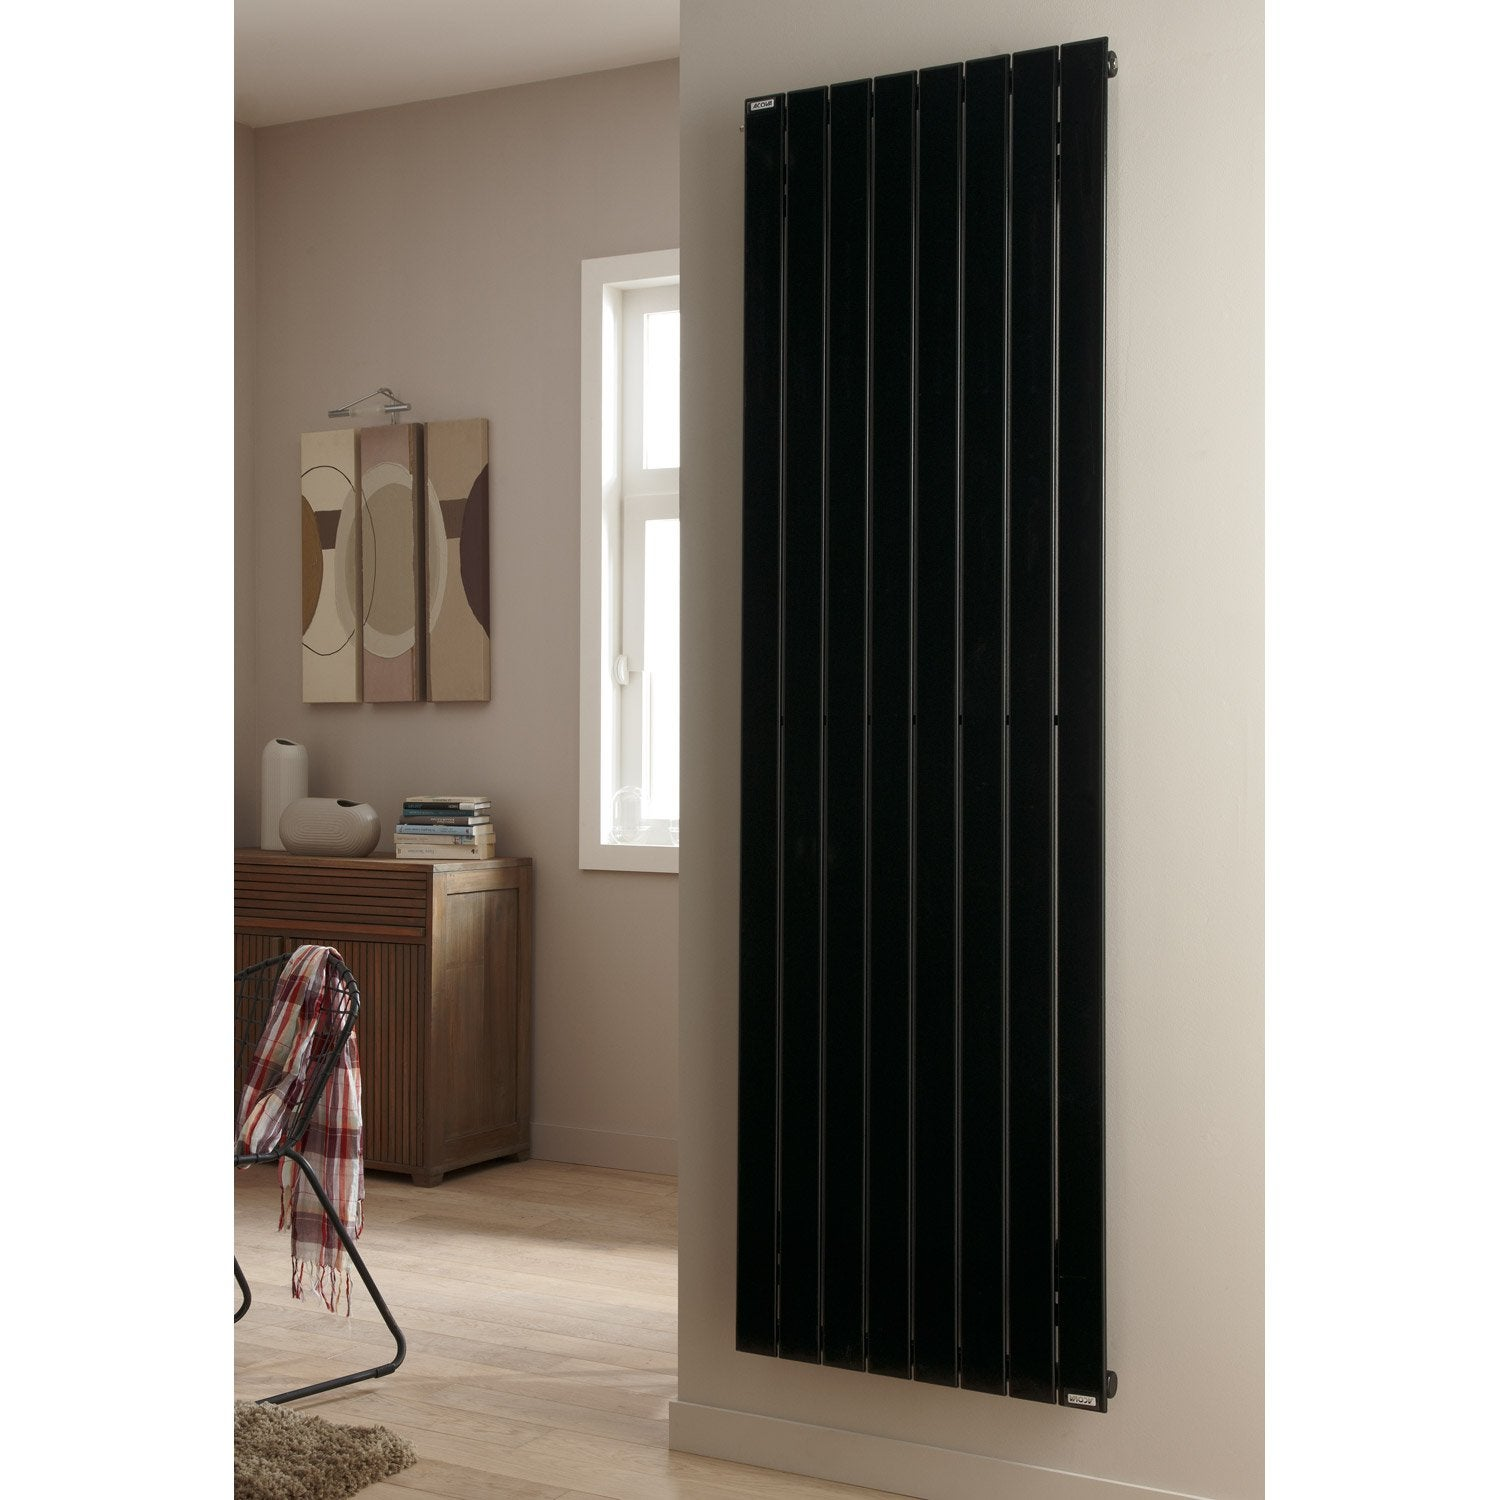 radiateur chauffage central acier acova lina couleur 1240w leroy merlin. Black Bedroom Furniture Sets. Home Design Ideas